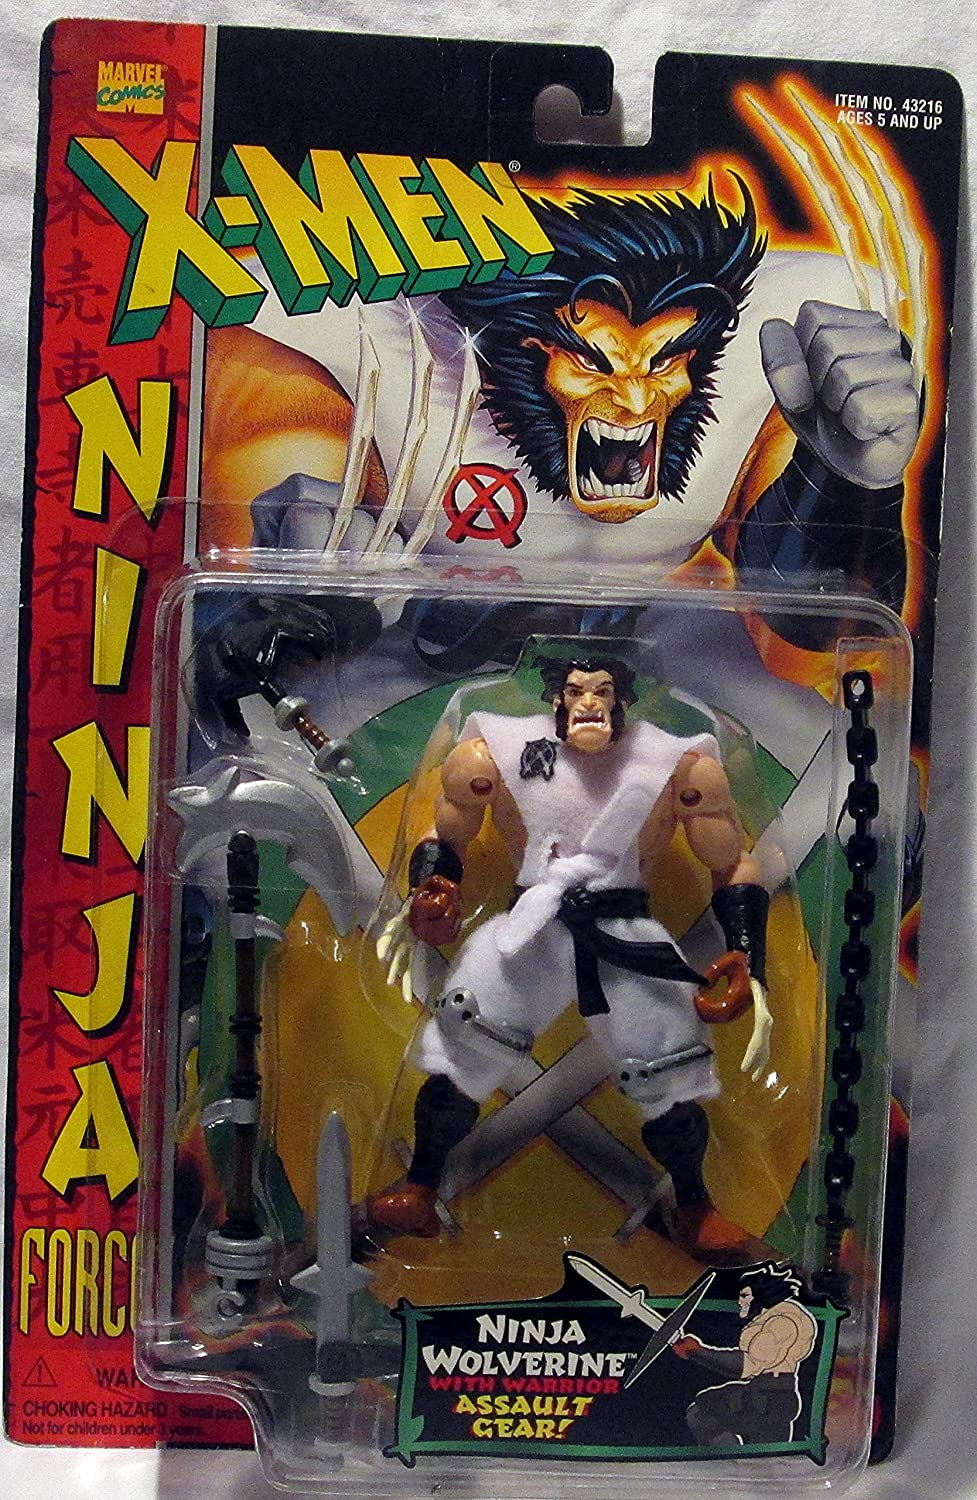 X Men Ninja Wolverine w/ Assault Gear Ninja Force Action Figure